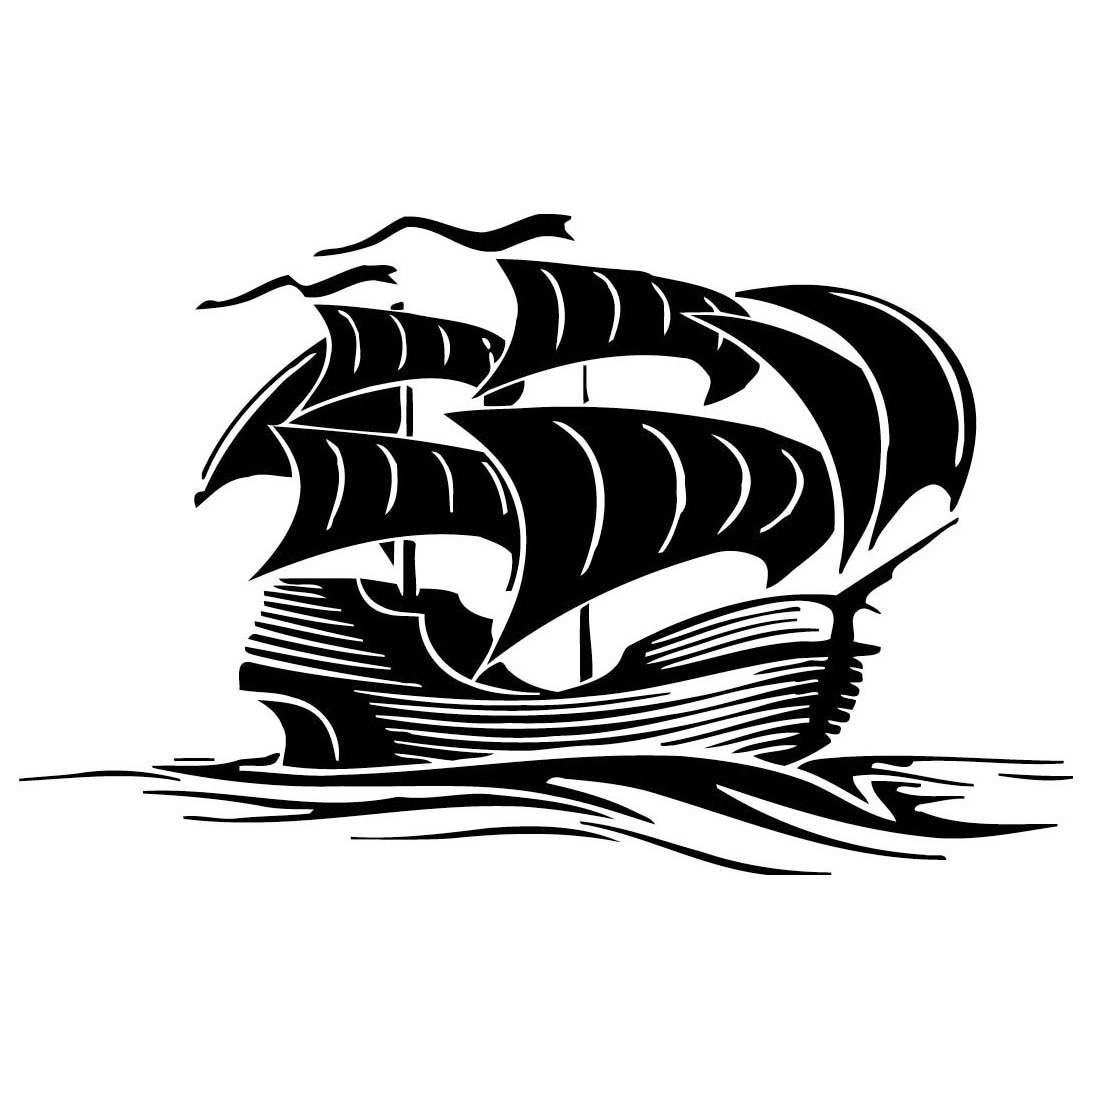 Shop Pirate Ship Vinyl Wall Art Free Shipping On Orders Over 45